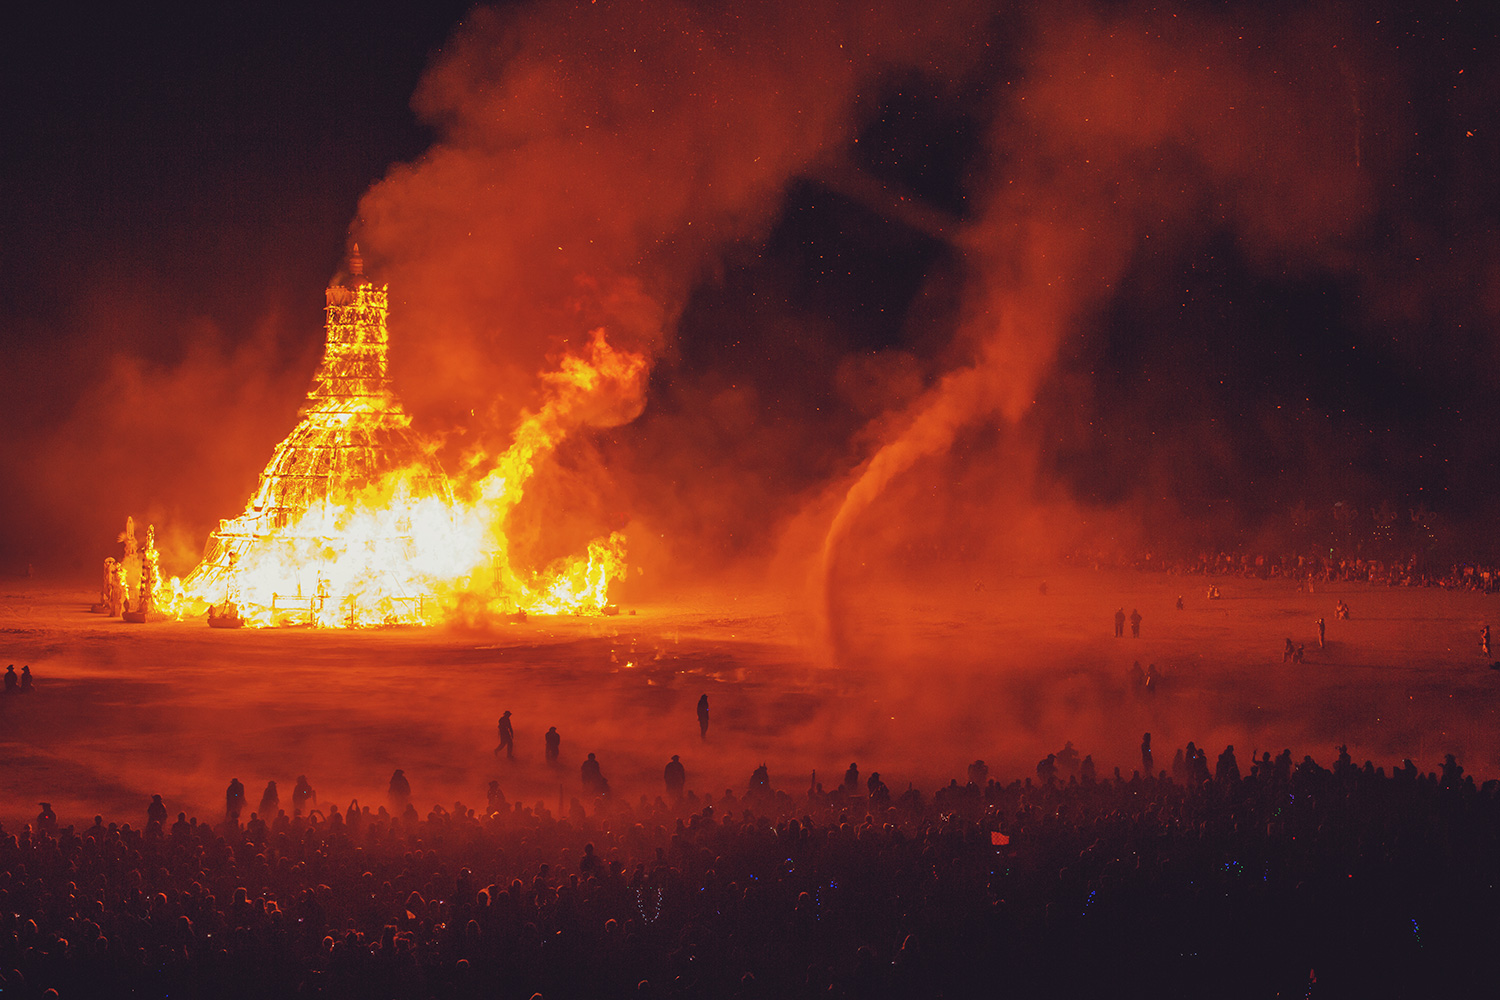 Temple on fire at Burning Man